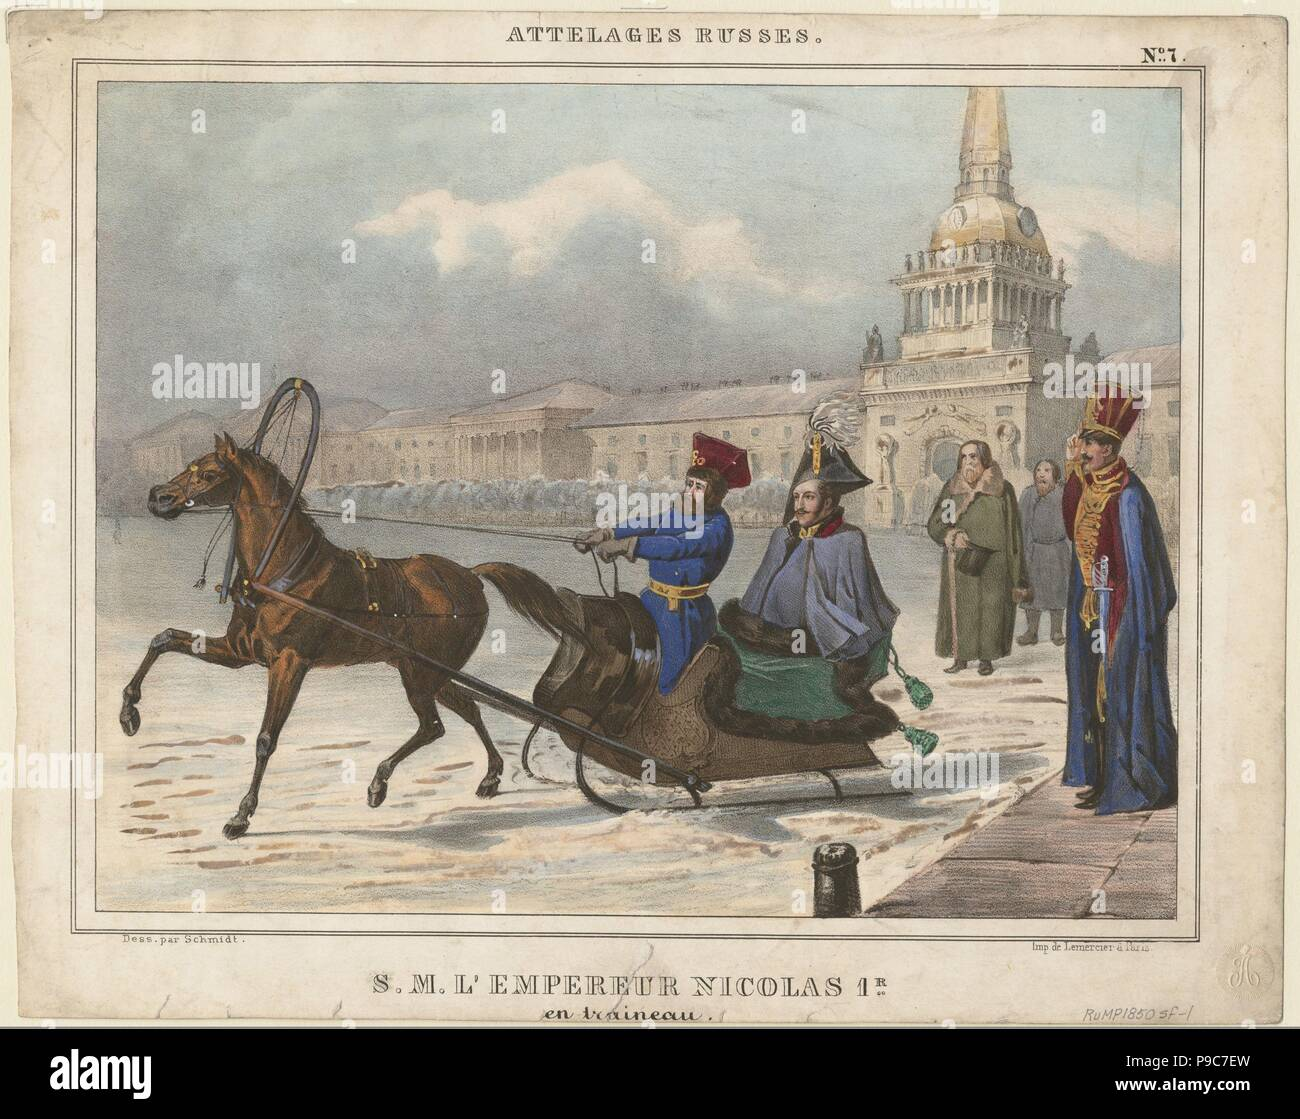 Nicholas I of Russia in a sleigh. Museum: PRIVATE COLLECTION. Stock Photo